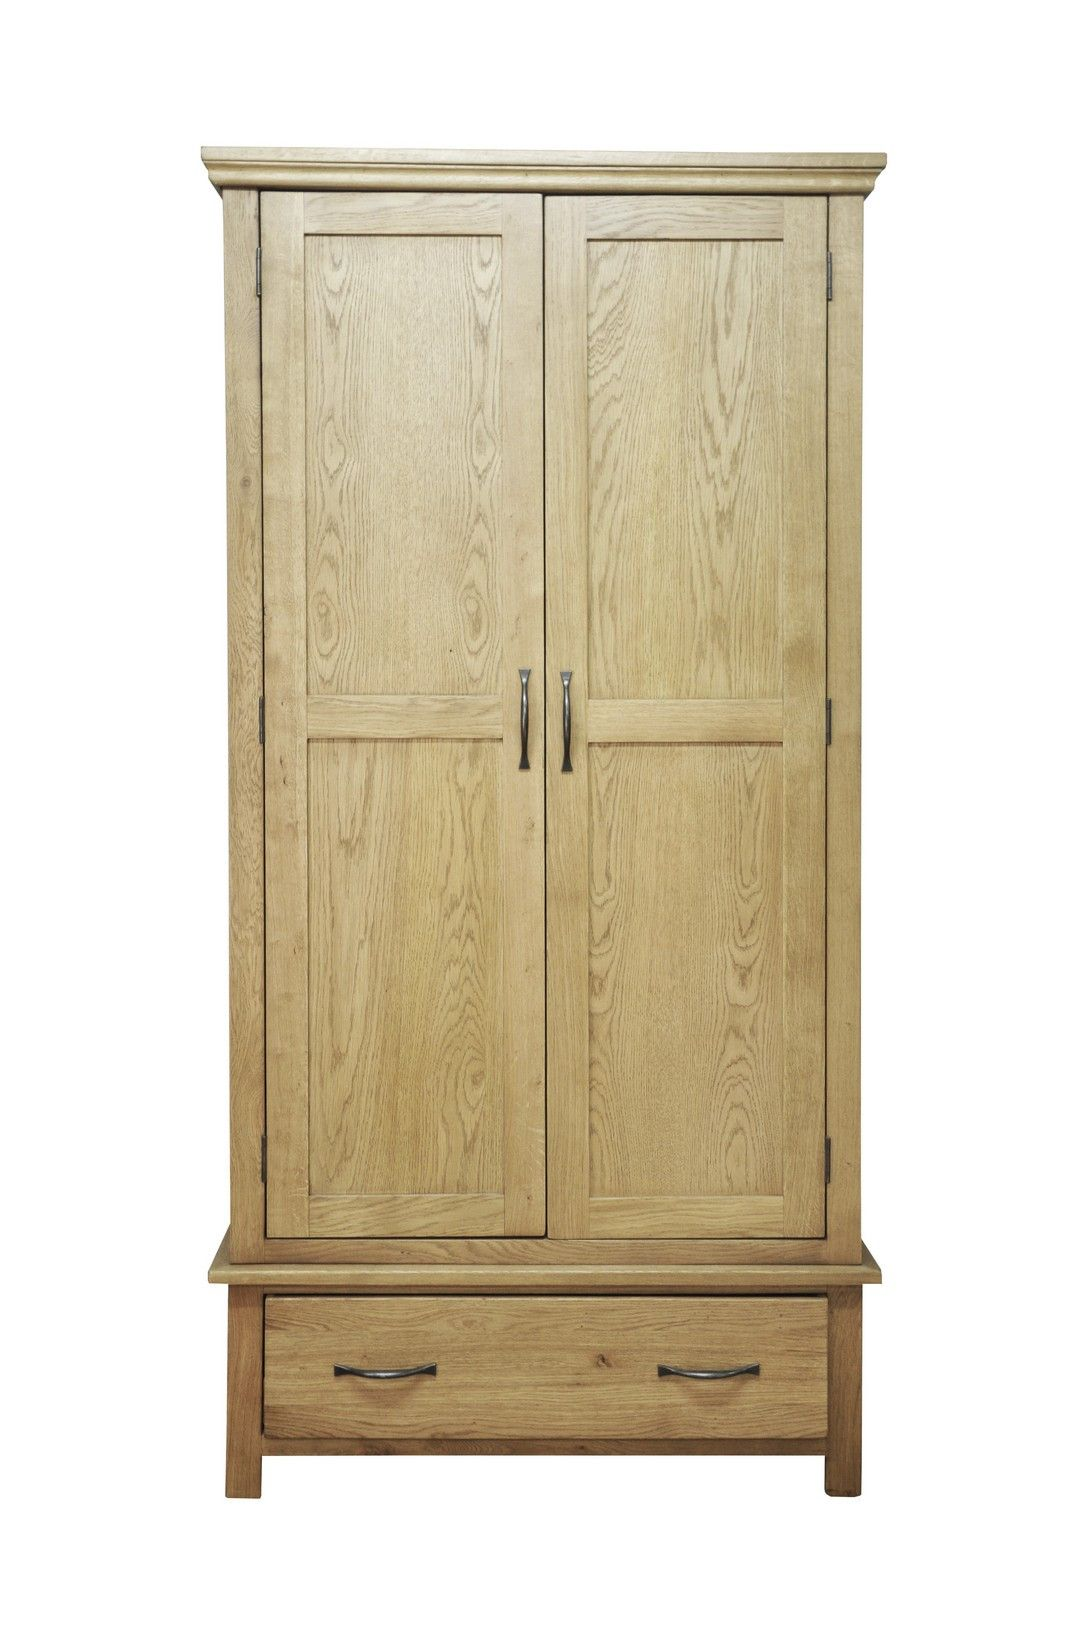 Http Www Bonsoni Com Wrexham Light Oak Finish Gents Double Wardrobe By Kaldors This Gents Double Wardr With Images Oak Bedroom Furniture Wardrobe Furniture